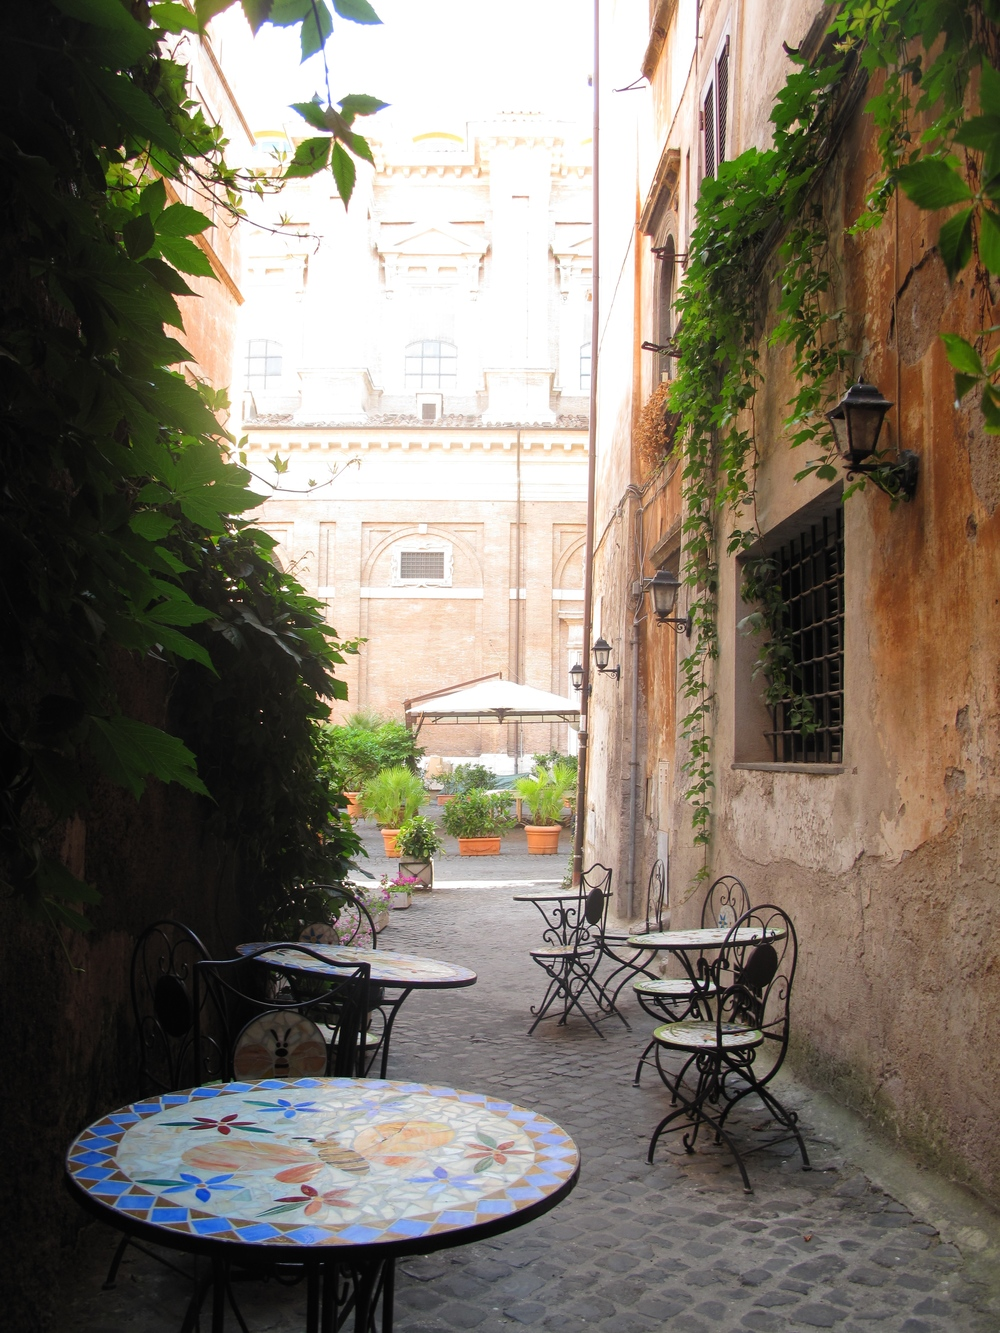 The tables of Gelateria del Teatro